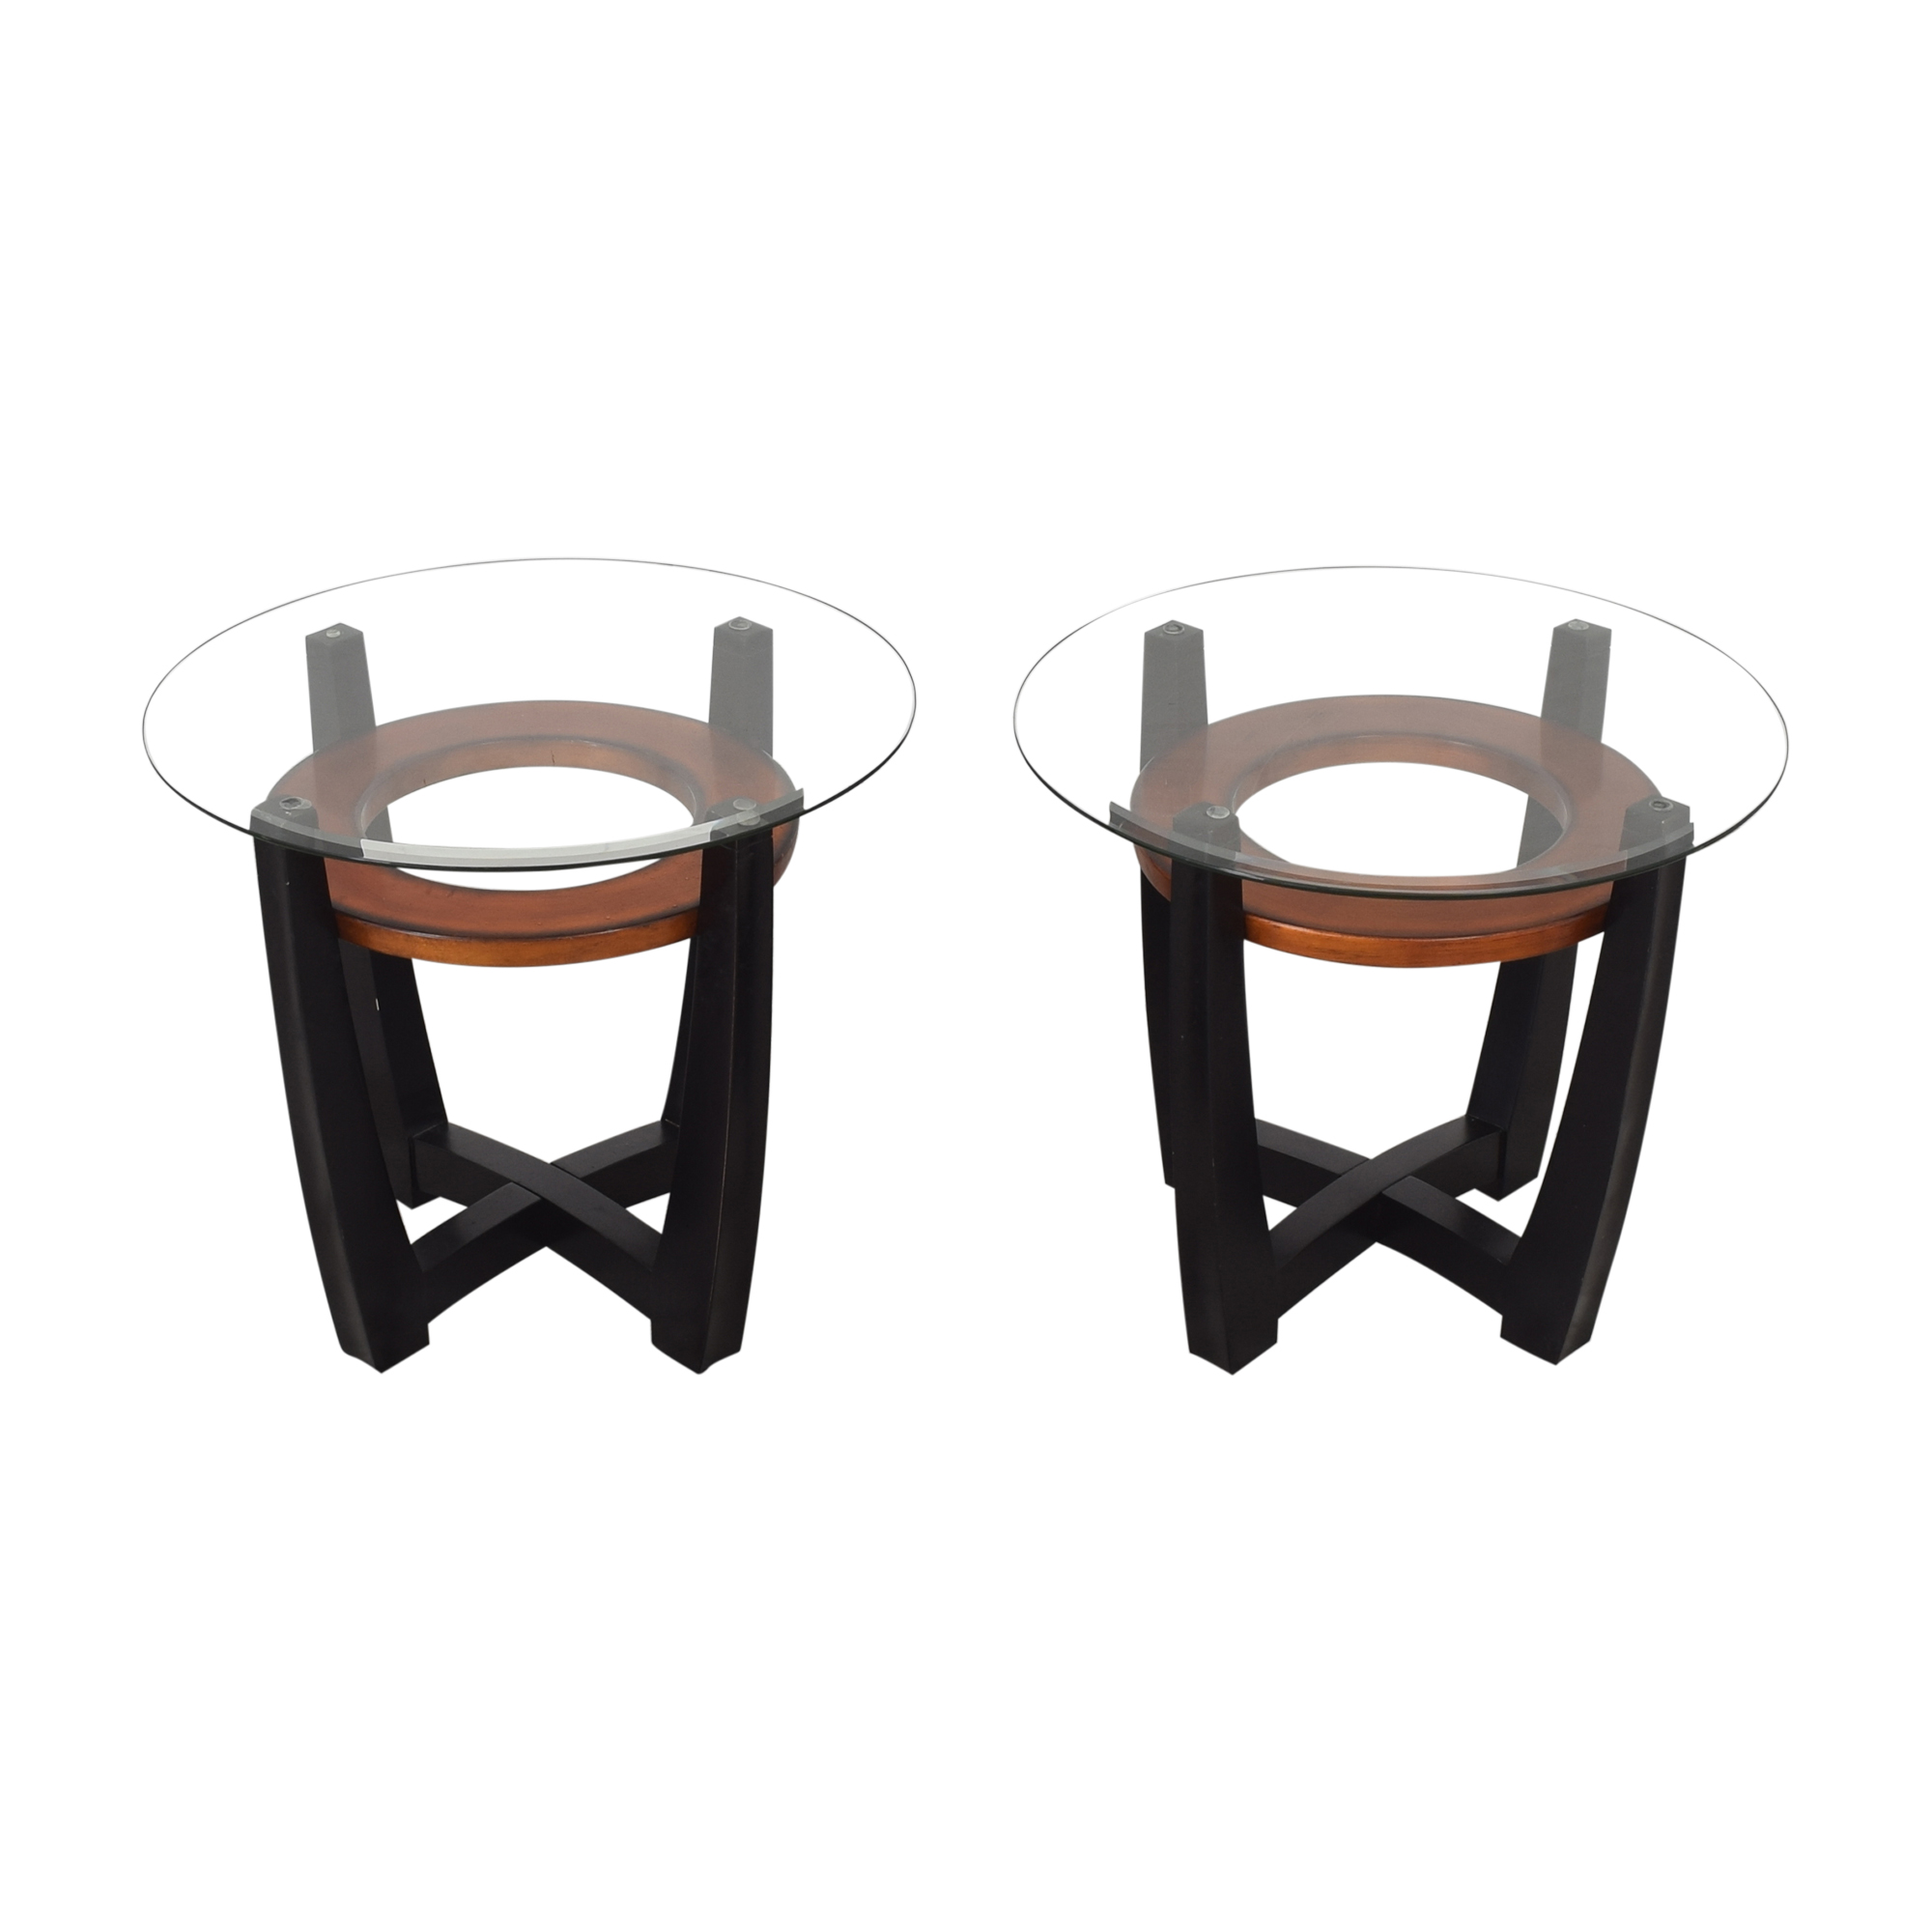 buy Macy's Macy's Elation Round End Tables online